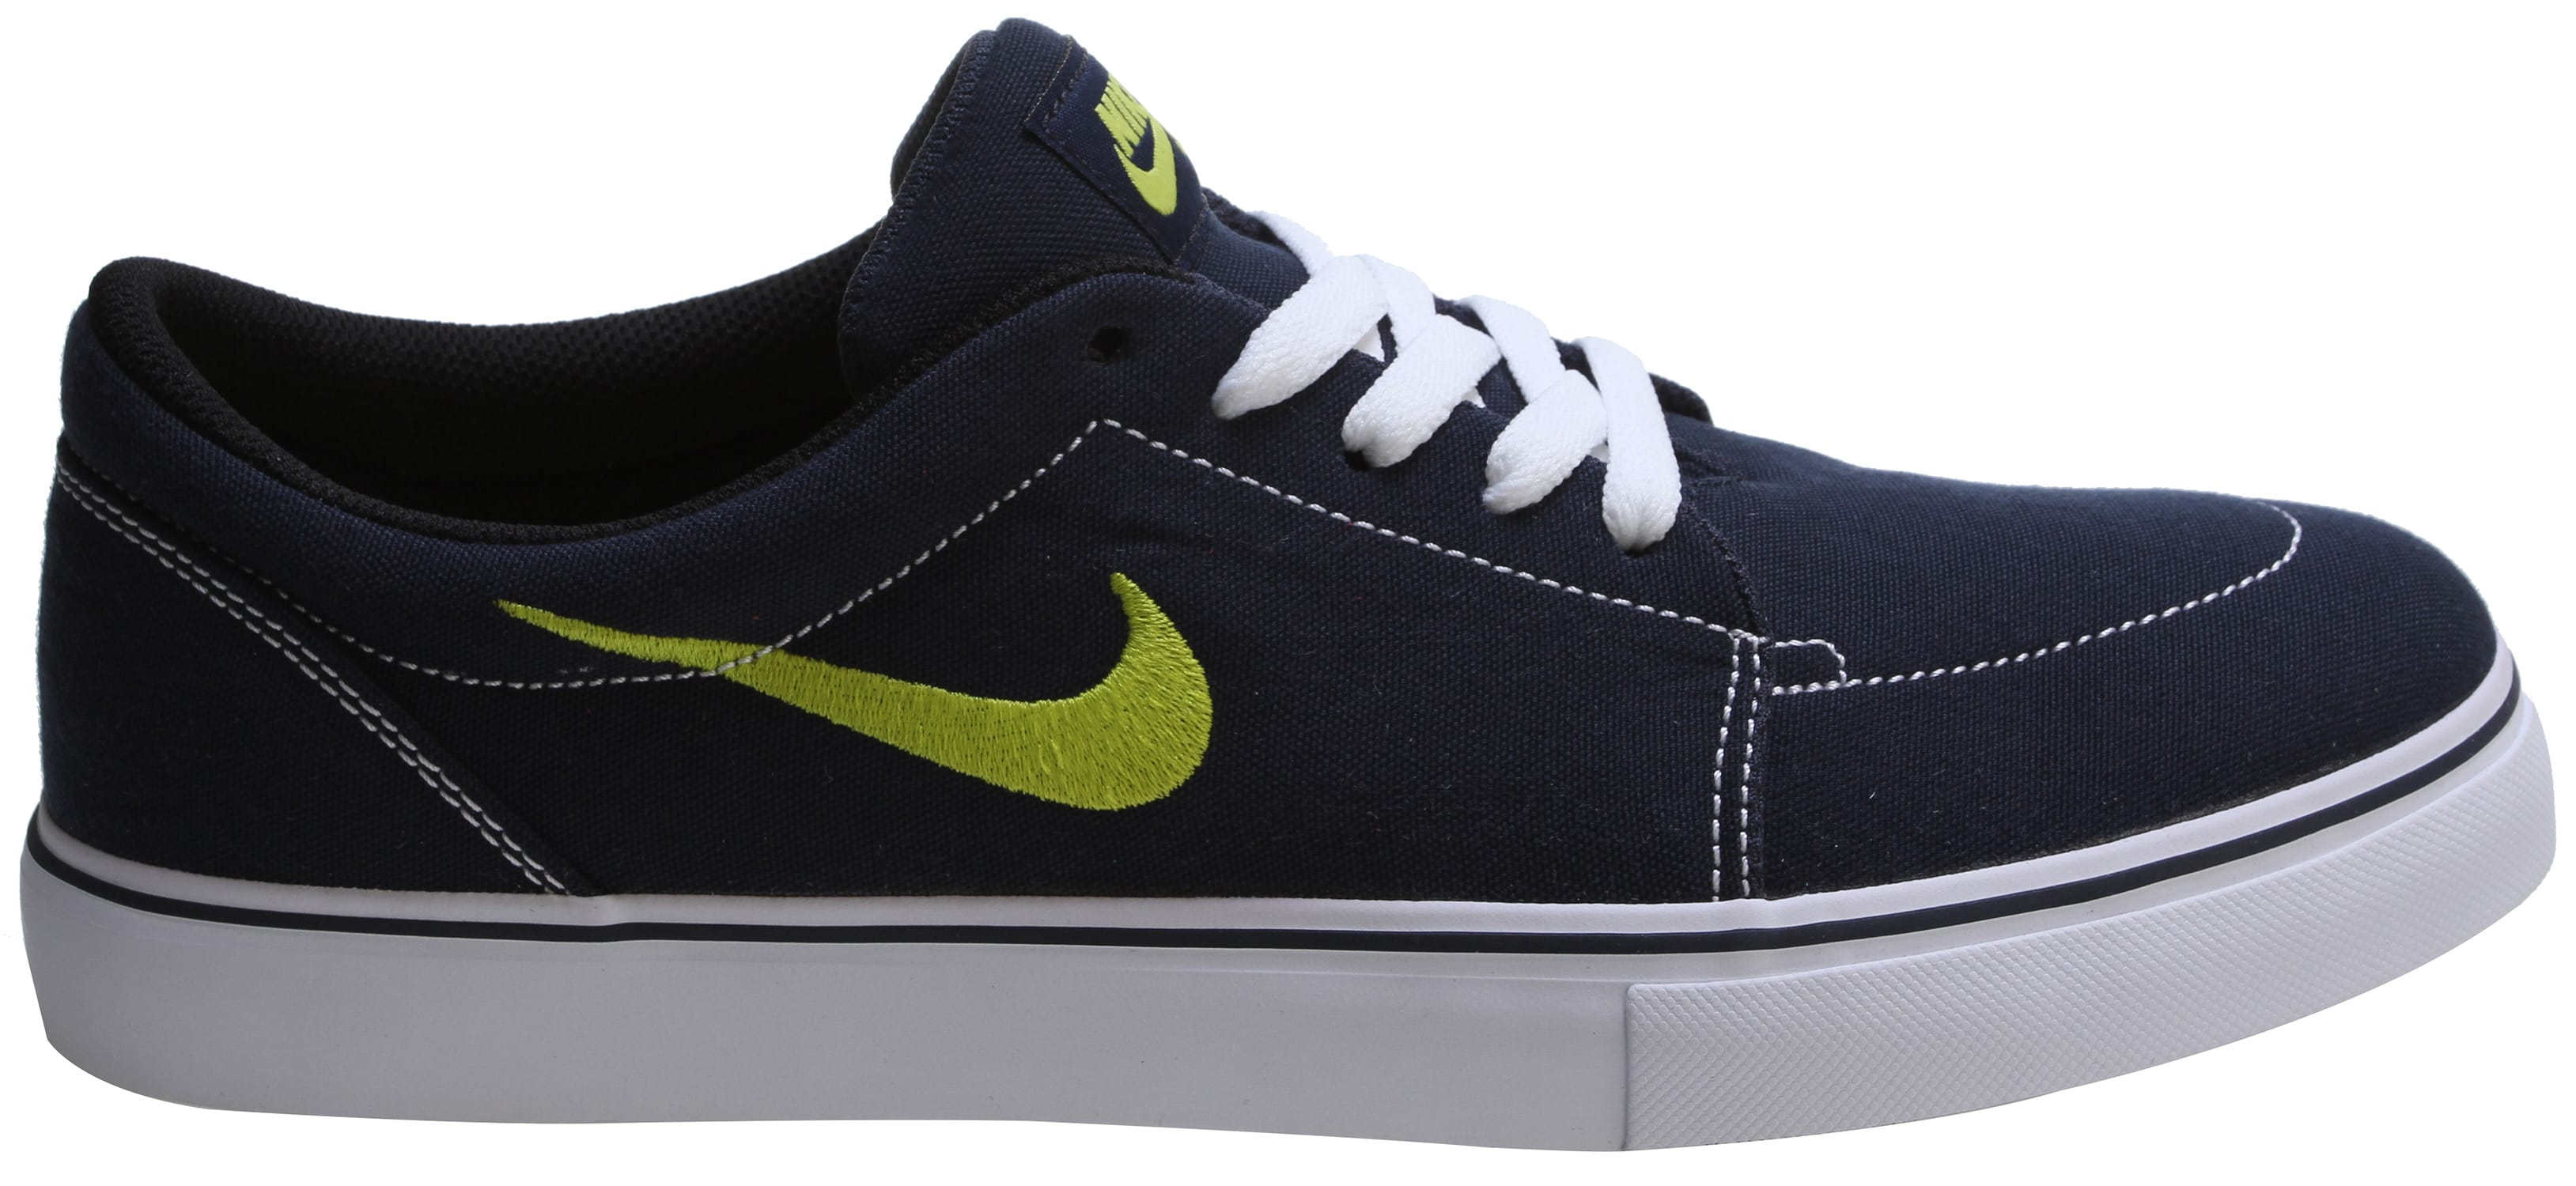 on sale nike satire canvas skate shoes up to 50